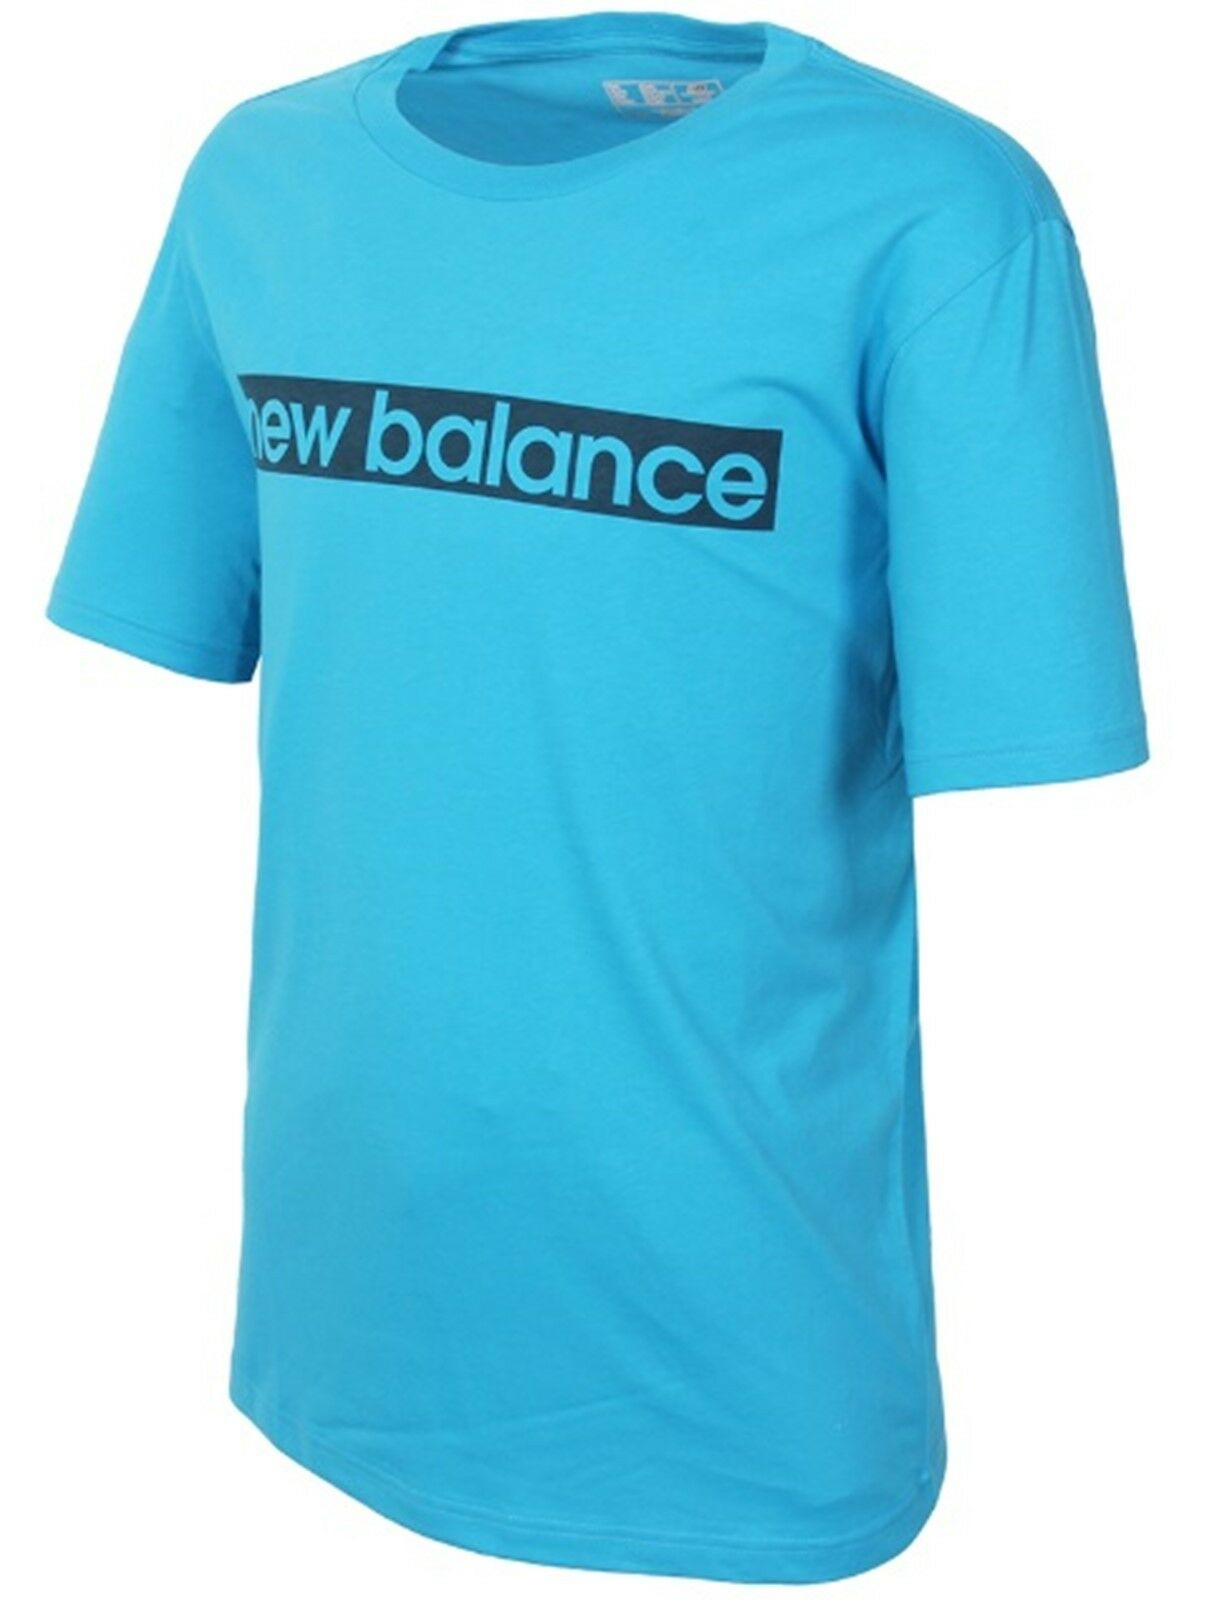 4a40e8fe4 New Balance Men Graphic Tee Shirts Athletic bluee Top Tee GYM Jersey  7B632150